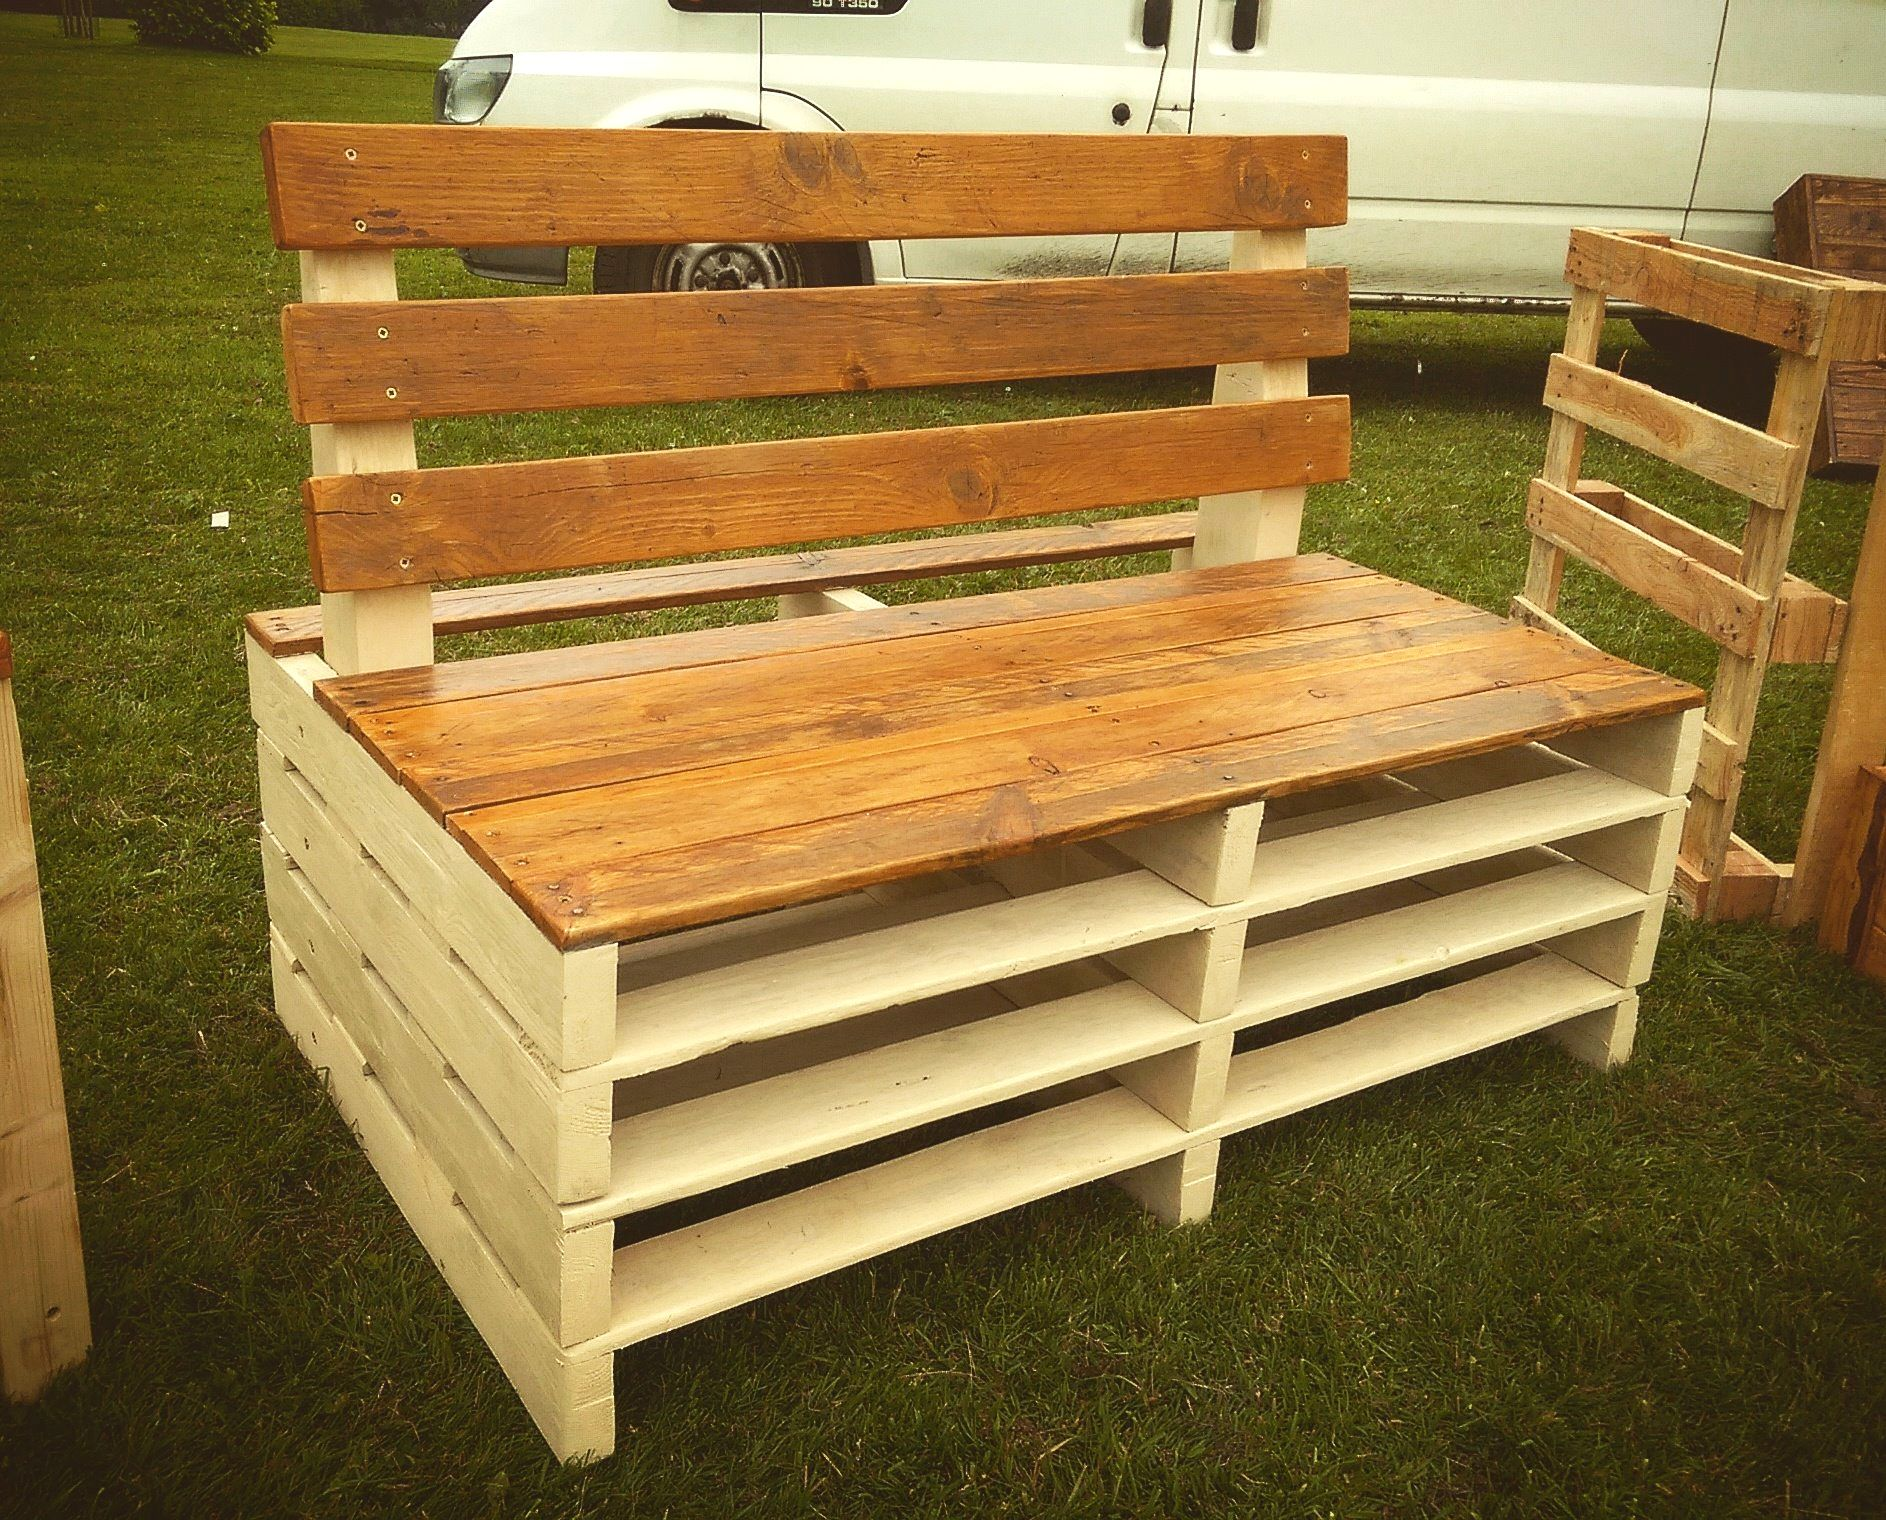 wooden pallet furniture. Get This Finest Ever Pallet Bench Creation, Constructed To Be Friendly Also A Little - Furniture Made By Liverpool Designs Wooden